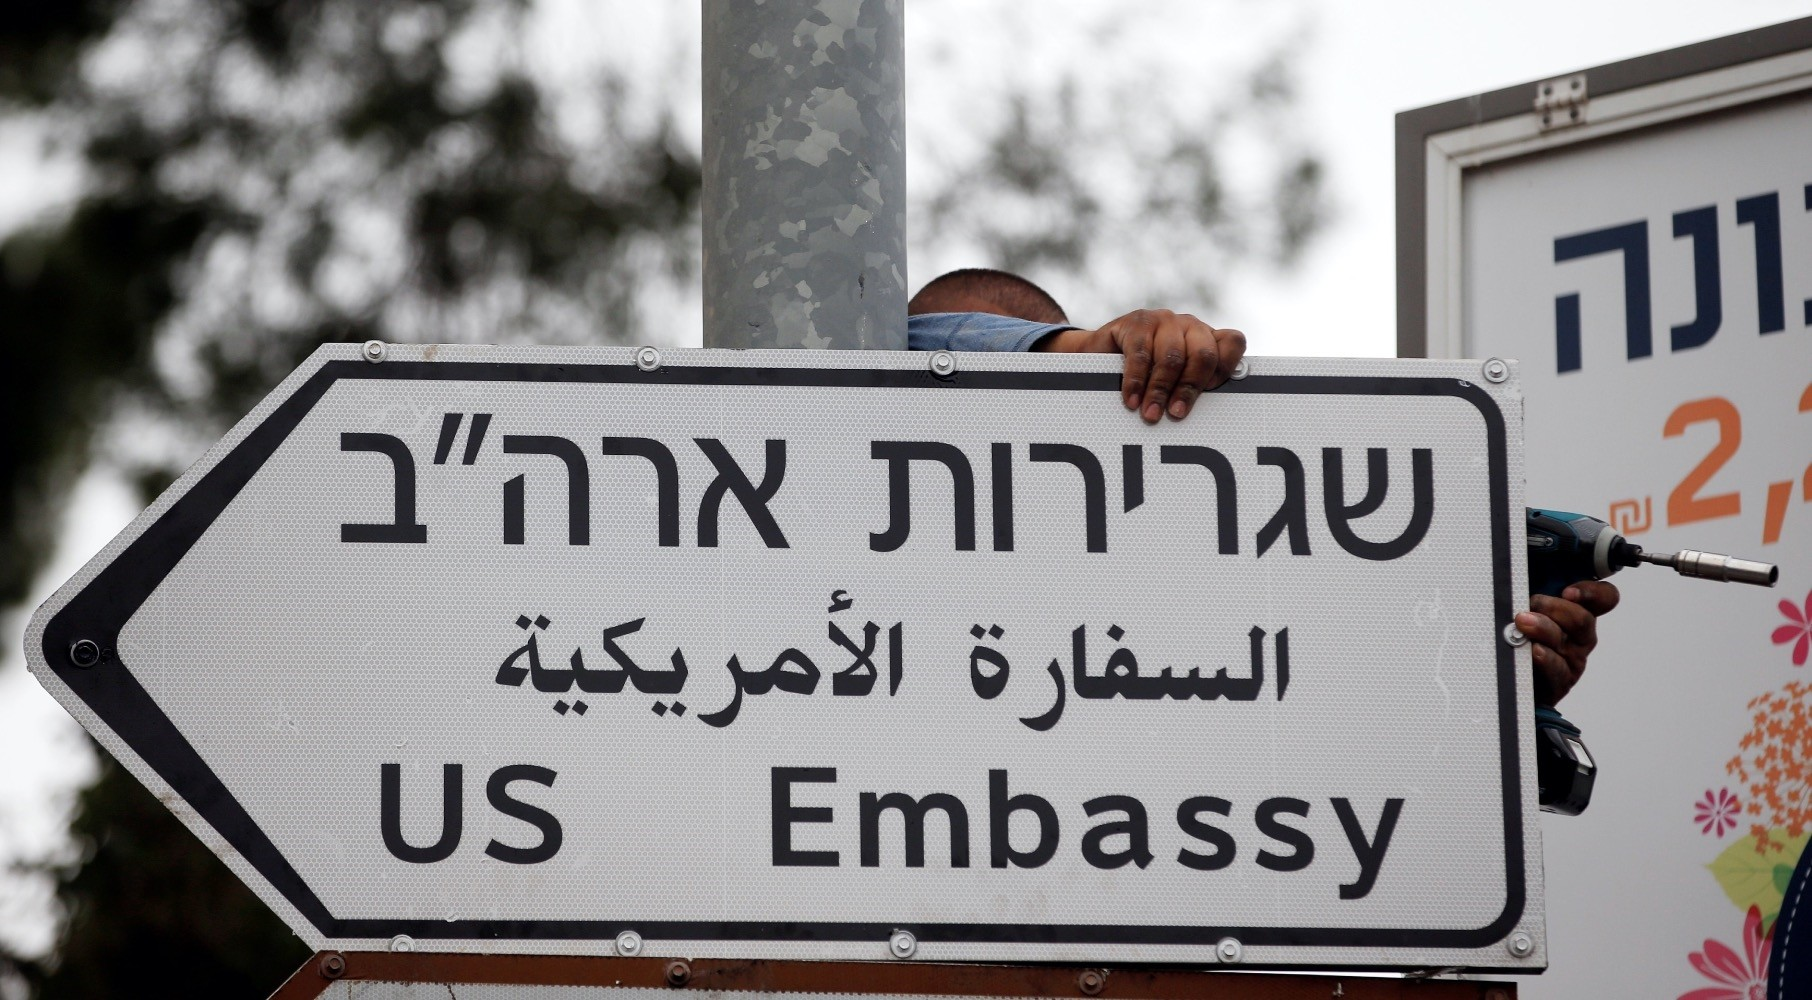 Since March 30, more than 193 Palestinians have died in violence following the inauguration of the U.S. embassy in Jerusalem.